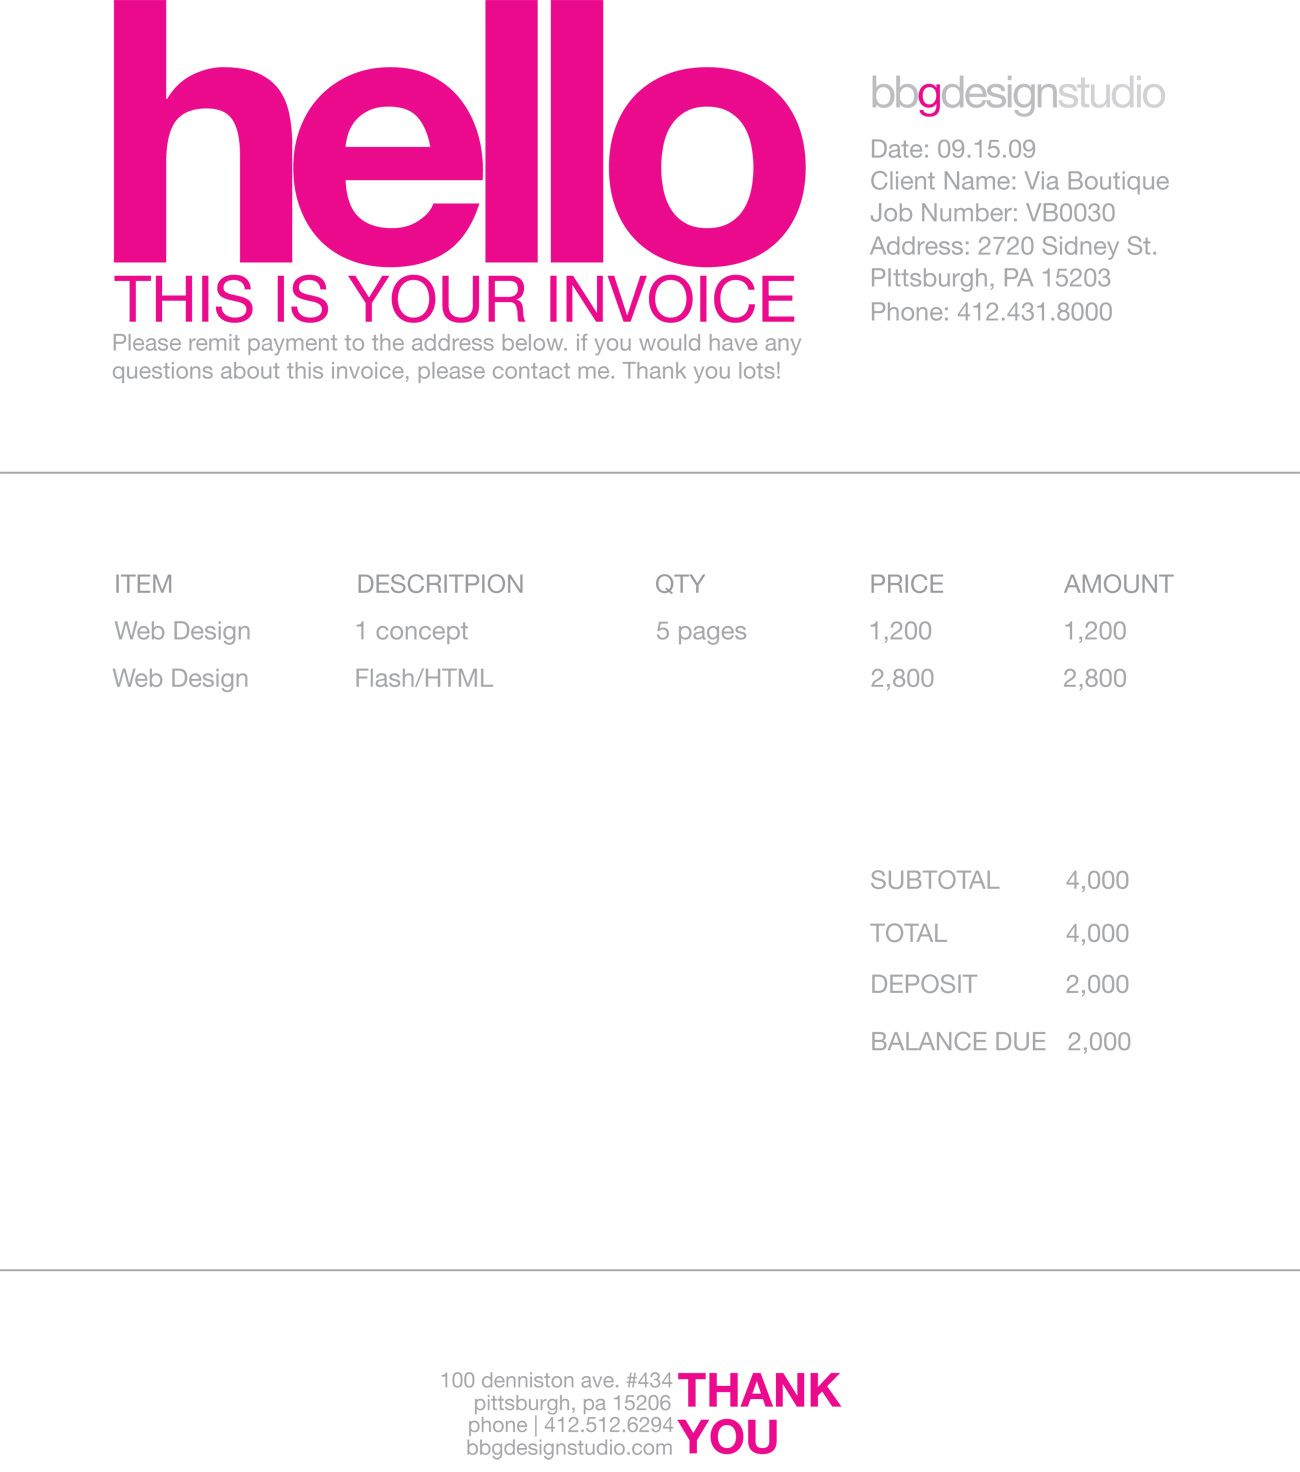 Pigbrotherus  Winsome  Images About Invoice Design On Pinterest With Magnificent Receipt Com Besides Old Navy Return Policy Without Receipt Furthermore Walmart No Receipt Return With Astonishing Can You Return Something To Kohls Without A Receipt Also Hampton Inn Receipt In Addition Read Receipts Whatsapp And Walmart Receipt Book As Well As Shopping Receipt Additionally Budget E Receipt From Pinterestcom With Pigbrotherus  Magnificent  Images About Invoice Design On Pinterest With Astonishing Receipt Com Besides Old Navy Return Policy Without Receipt Furthermore Walmart No Receipt Return And Winsome Can You Return Something To Kohls Without A Receipt Also Hampton Inn Receipt In Addition Read Receipts Whatsapp From Pinterestcom